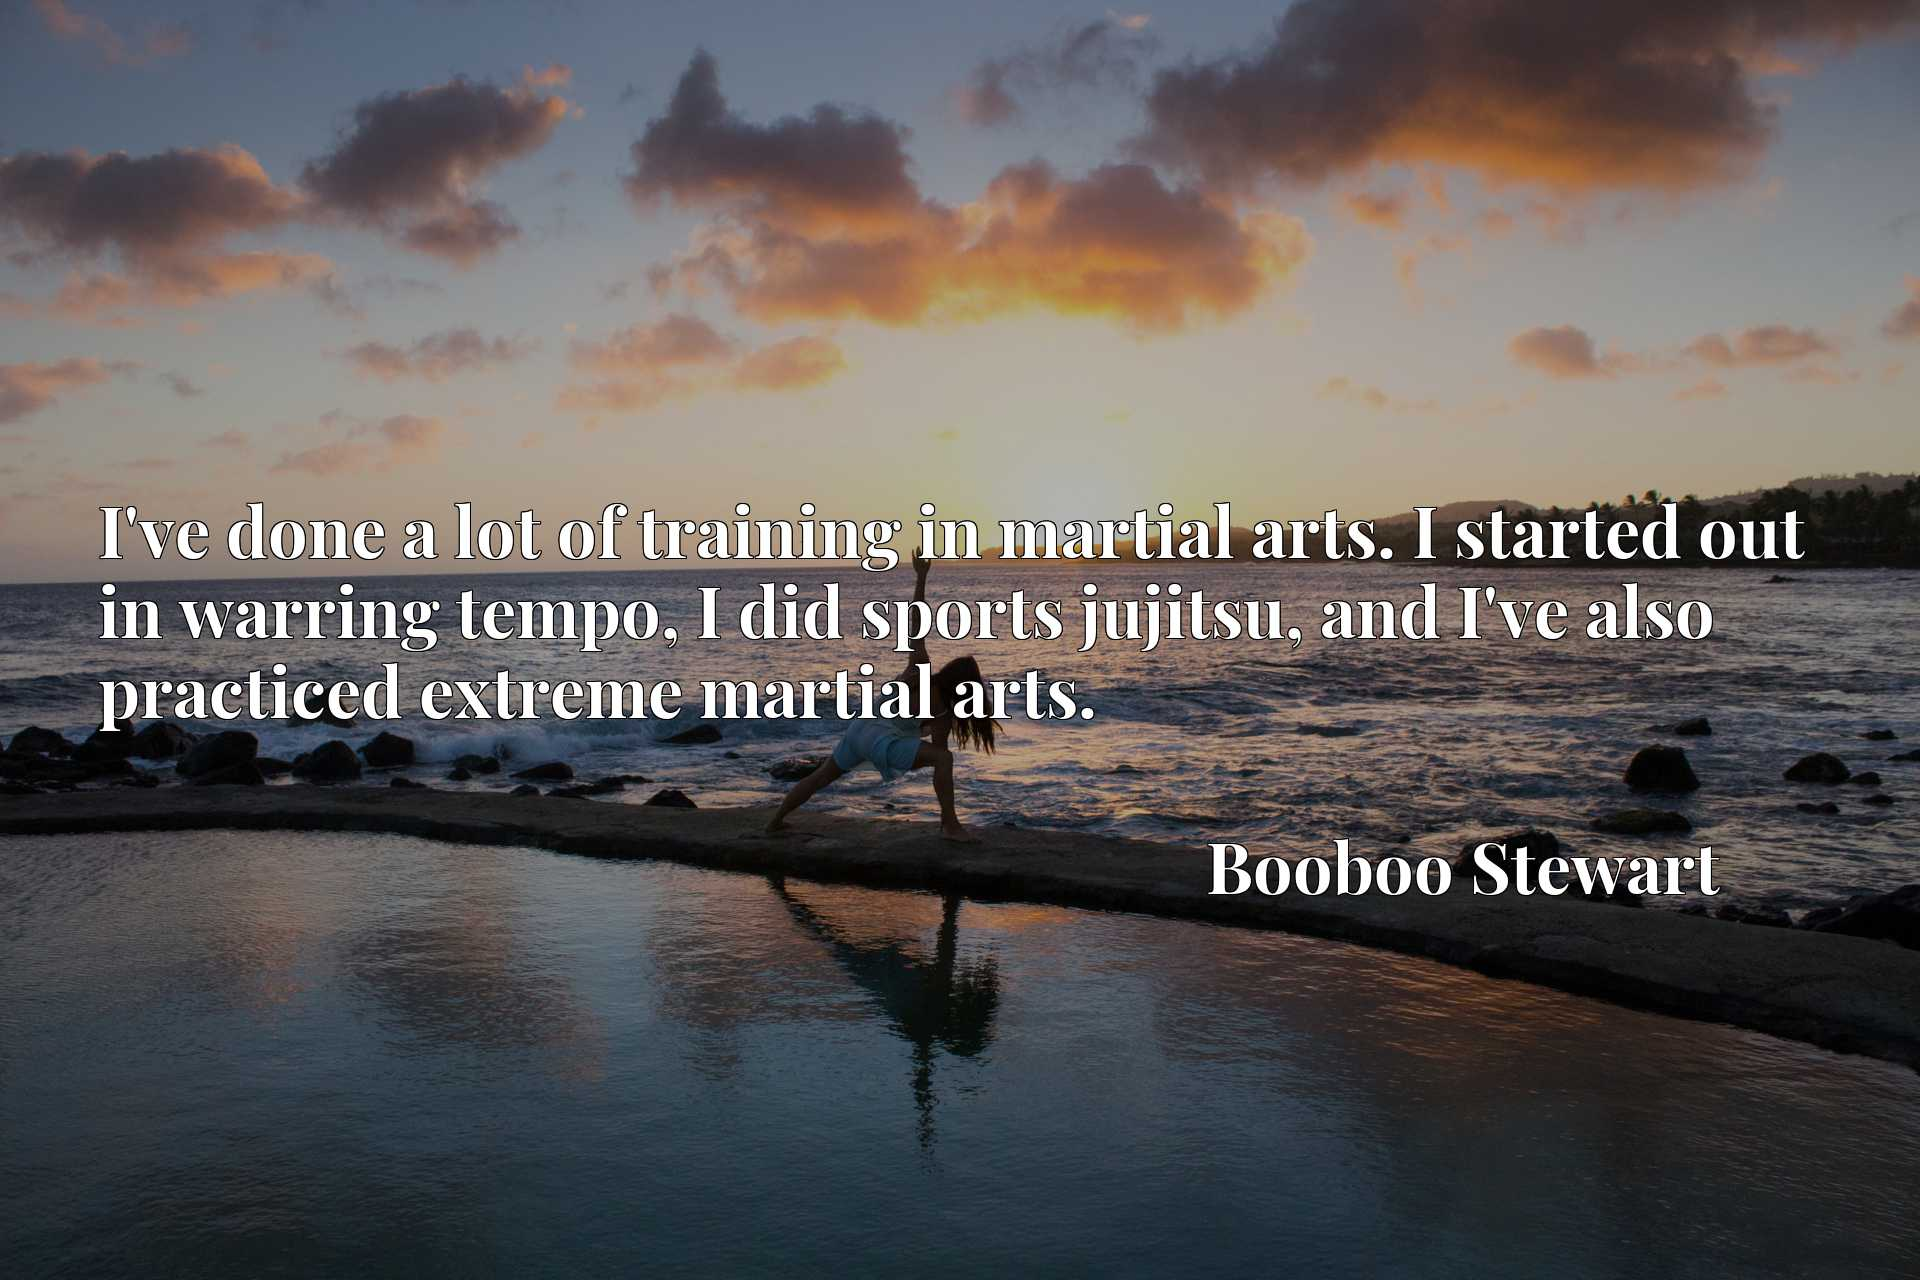 Quote Picture :I've done a lot of training in martial arts. I started out in warring tempo, I did sports jujitsu, and I've also practiced extreme martial arts.